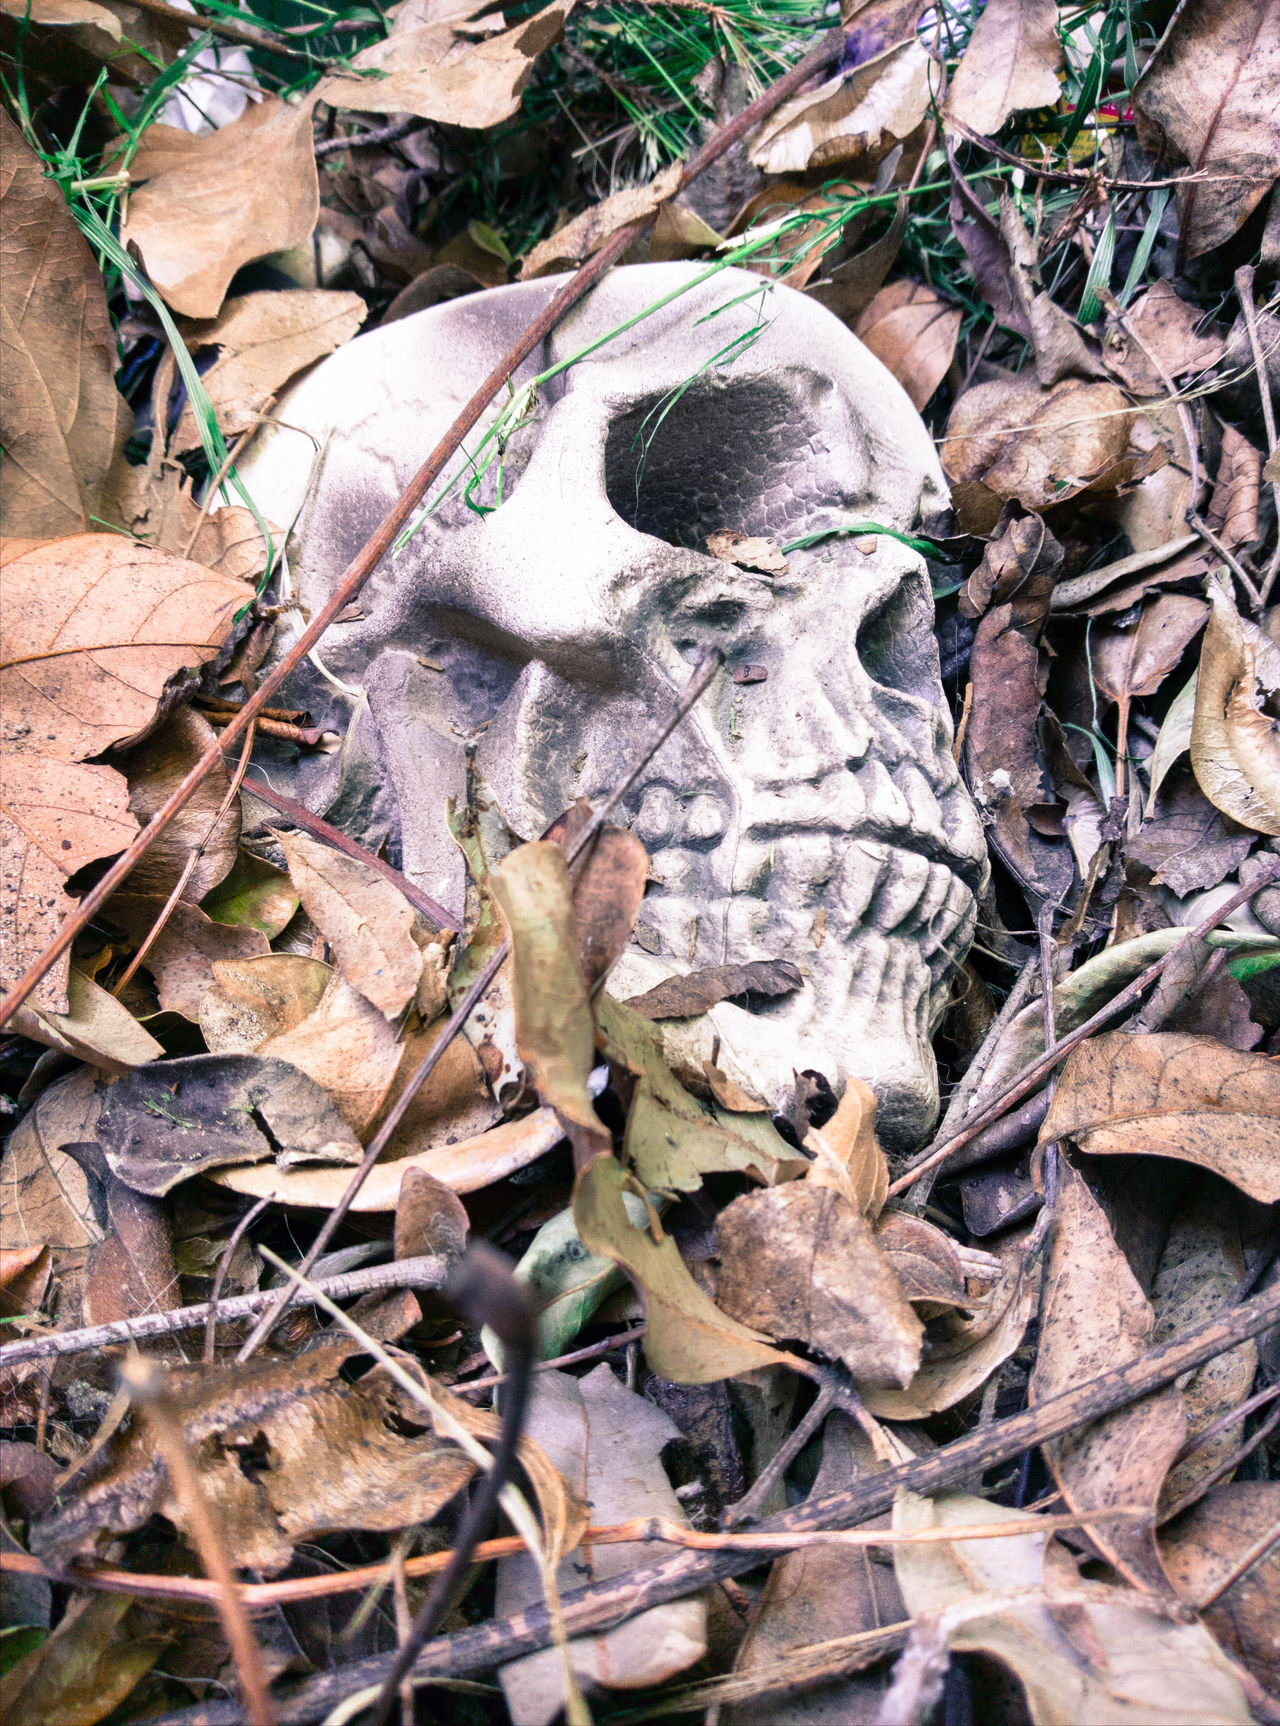 Outdoors No People Leaf Day Animal Themes Close-up Nature Skull Halloween Props Decoration